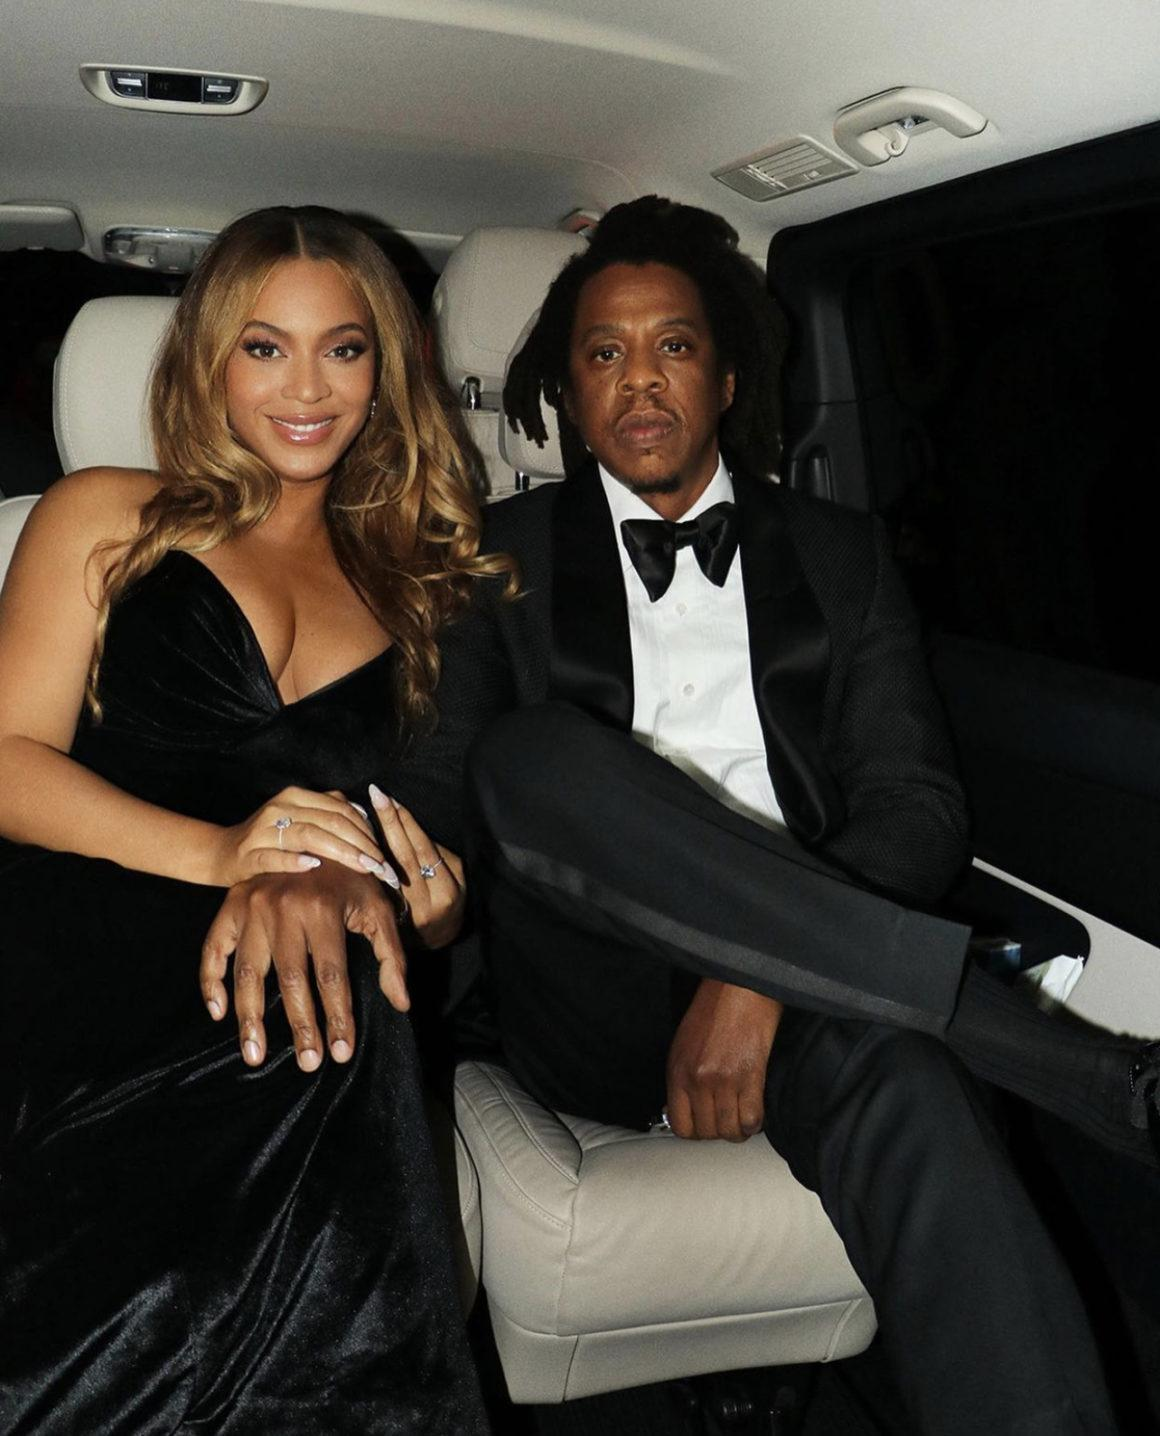 Beyoncé Wears Custom Black Velvet Valdrin Sahiti Dress While Attending the 'The Harder They Fall' World Premiere at the London Film Festival With Jay-Z